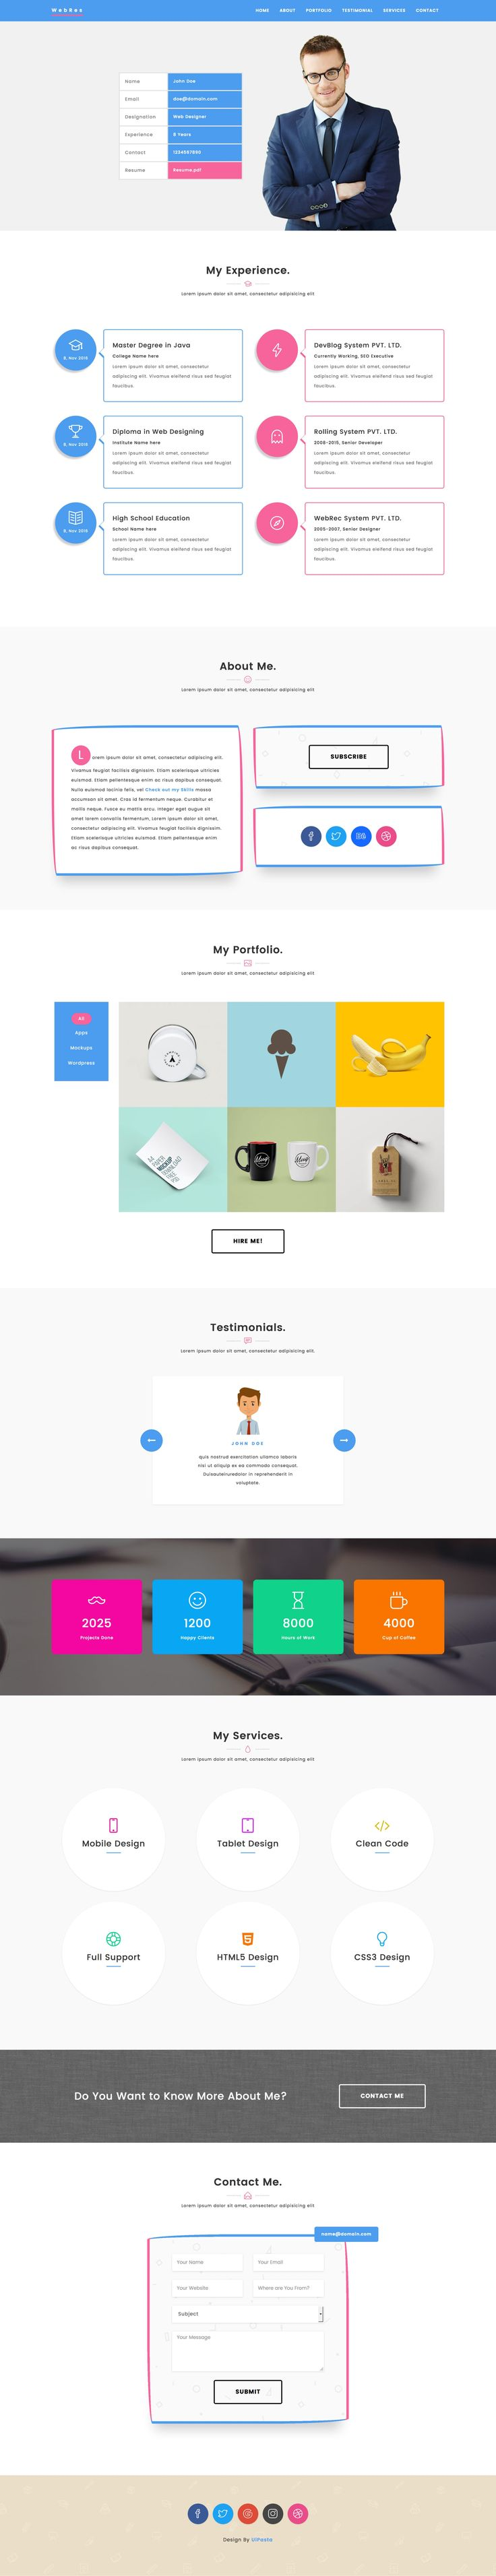 'WebRes' is a FREE One Page HTML template in the style of an modern online résumé. All the standard CV sections apply but it's got added flavor with color bursts and unique styled drop-shadow boxes. Features include fixed header navigation, experience section, portfolio with big image pop-up gallery (plus category filter), testimonial slider, services, contact form and a neat added feature with a newsletter sign up modal.